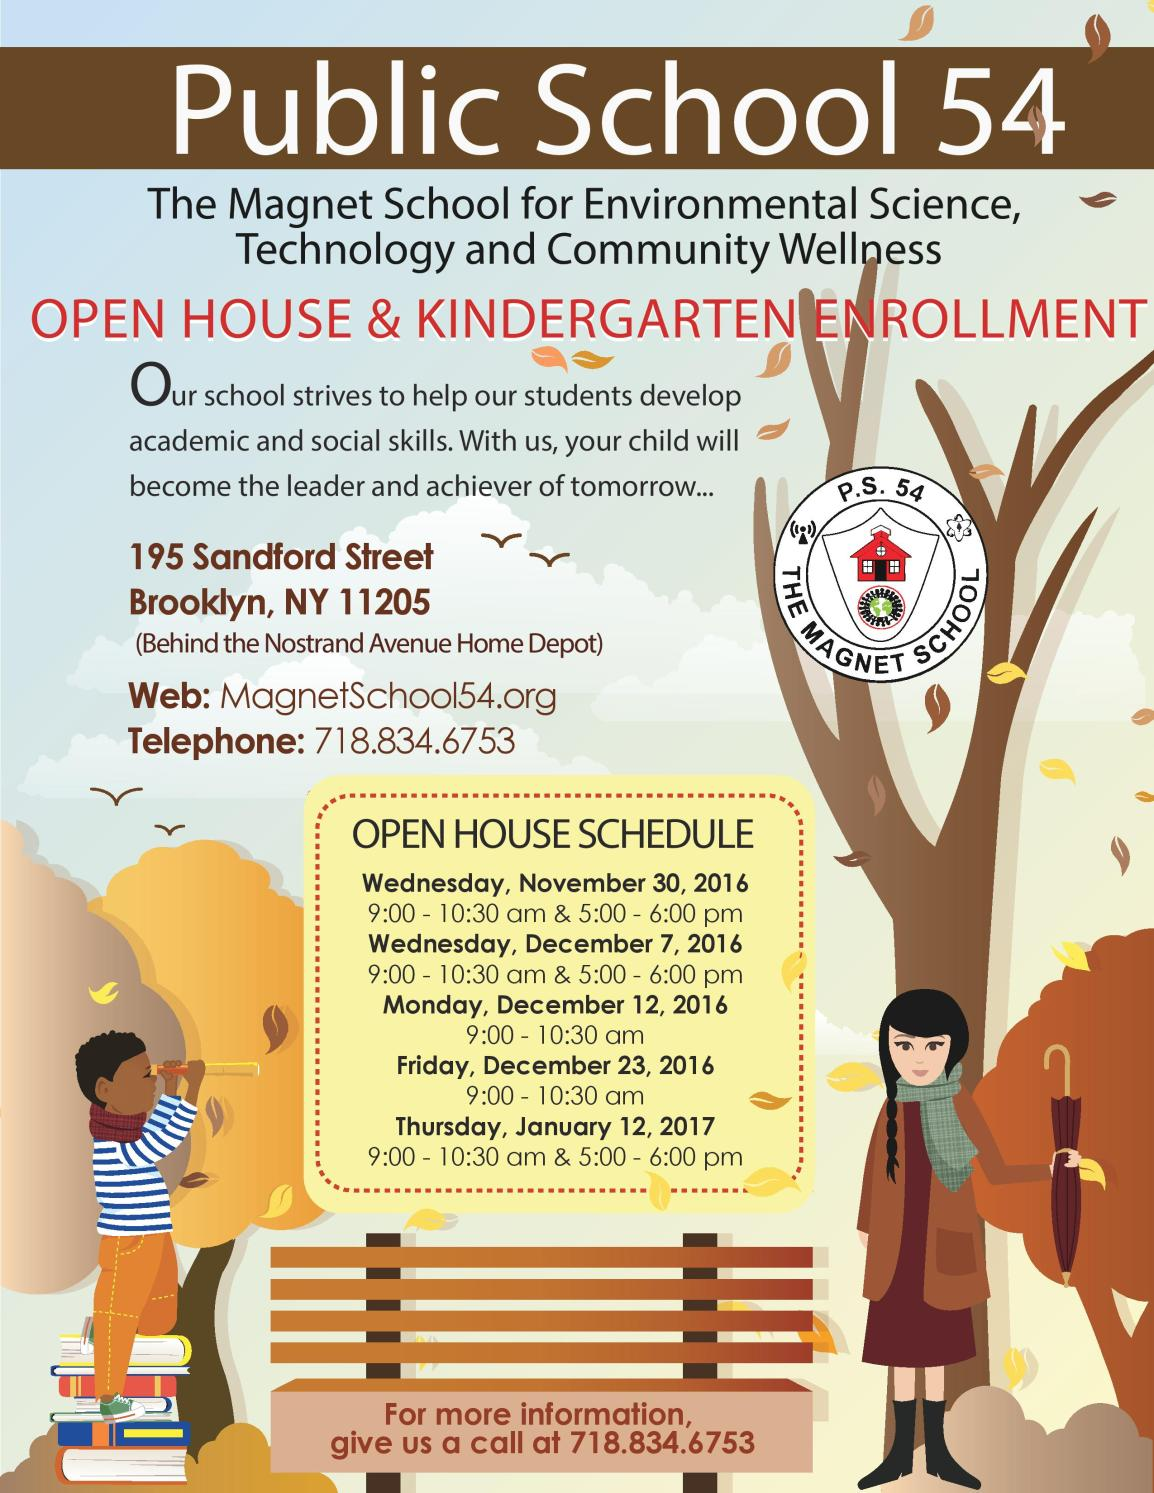 Please join our Open House and Kindergarten Enrollment Event.